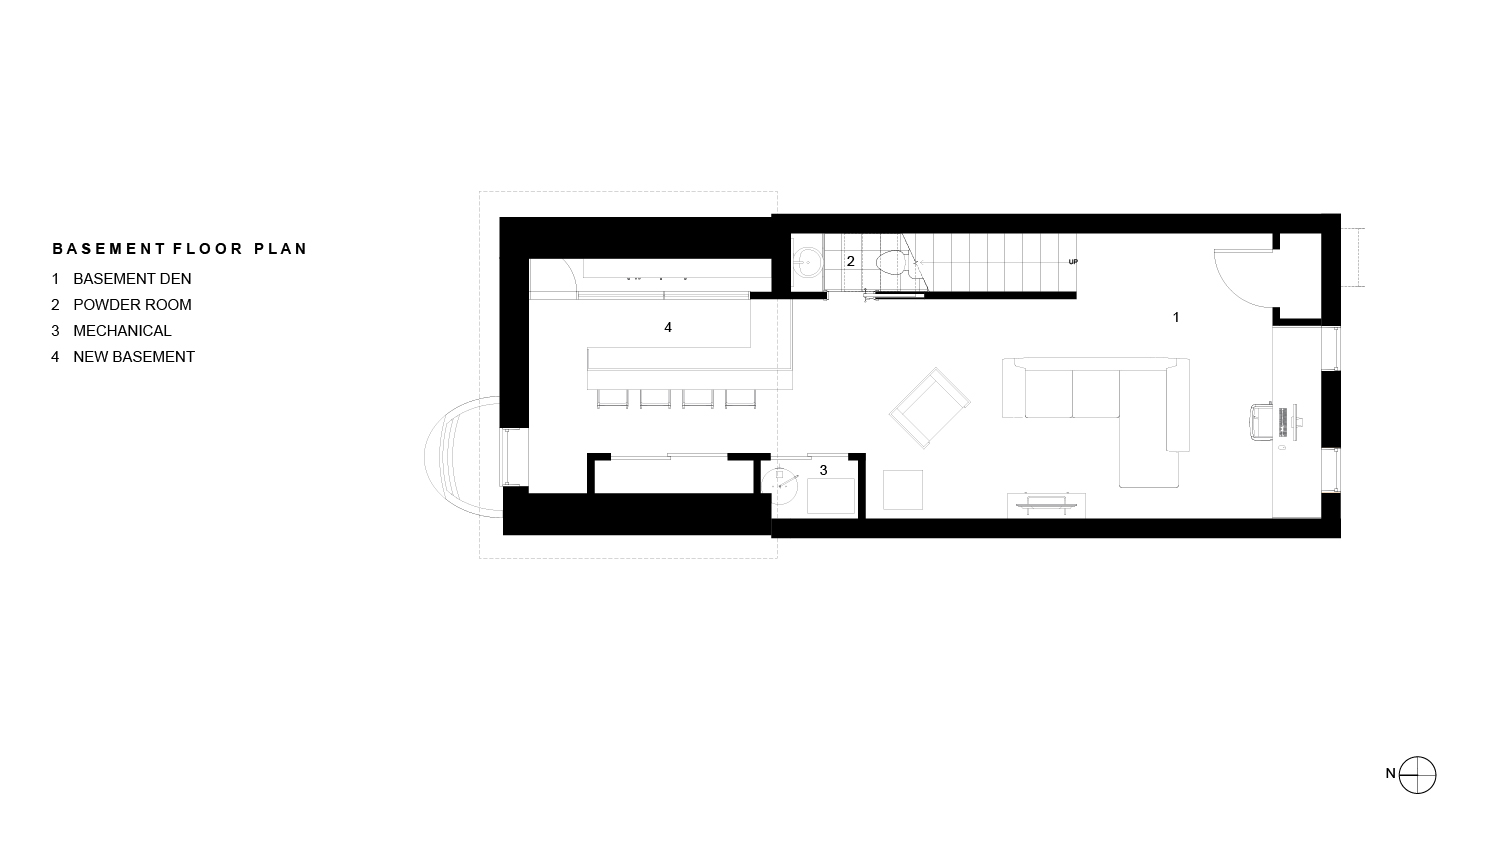 RPA Sabatino 17th Basement Floor Plan 010218 01